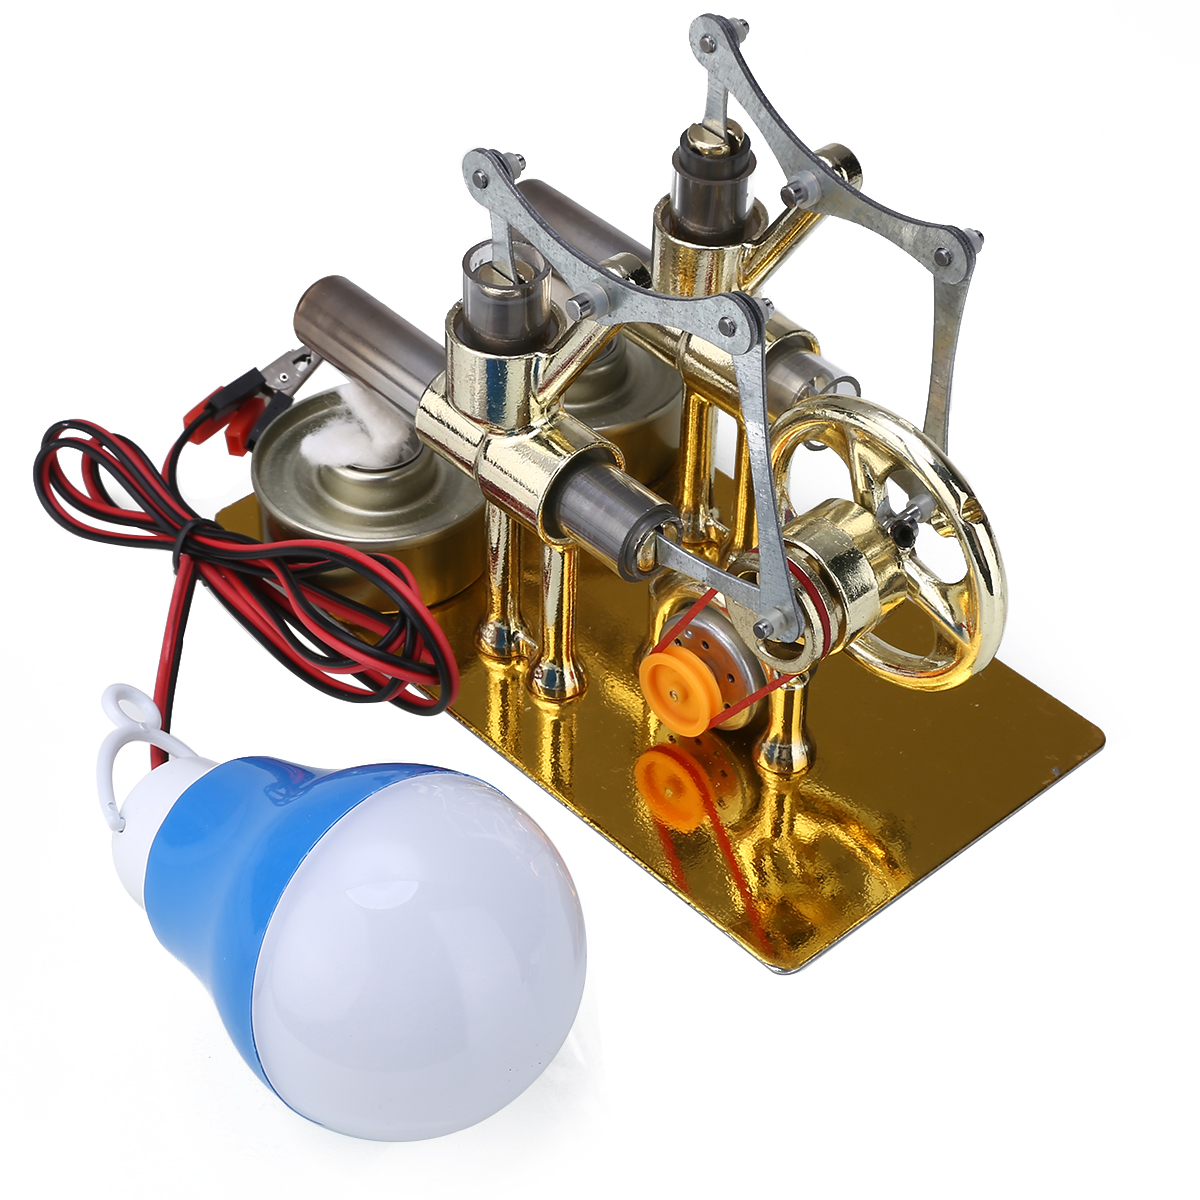 2019 New Double Cylinder Stirling Engine Motor Model Generator Miniature Toy  Heat Steam Education DIY Model Toy Gift For Kids